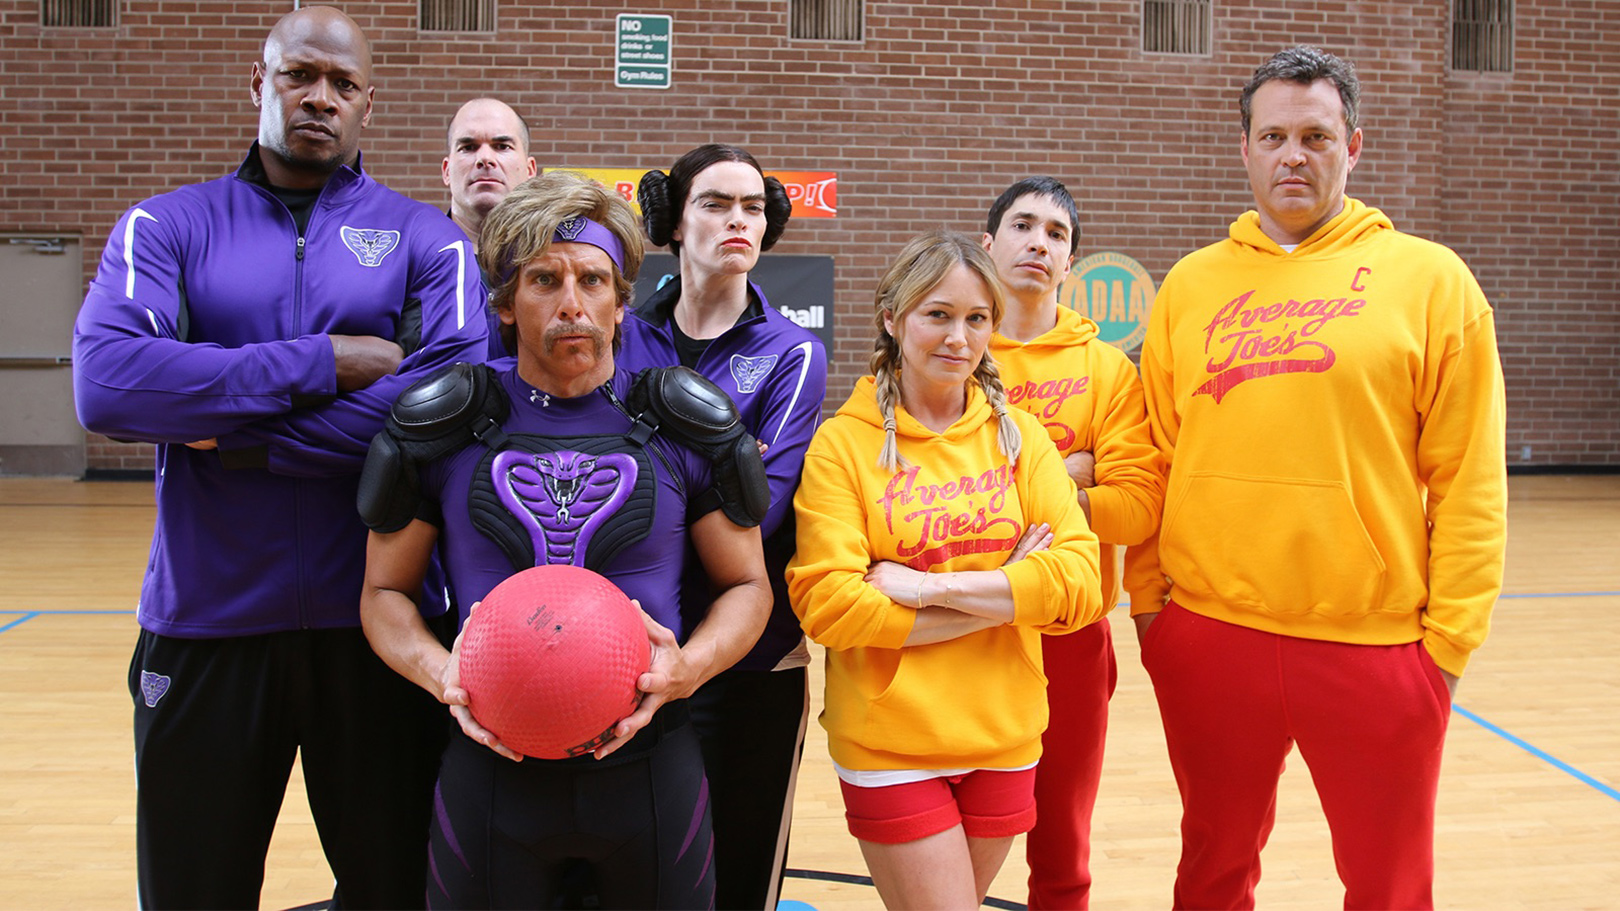 dodgeball full movie videobash